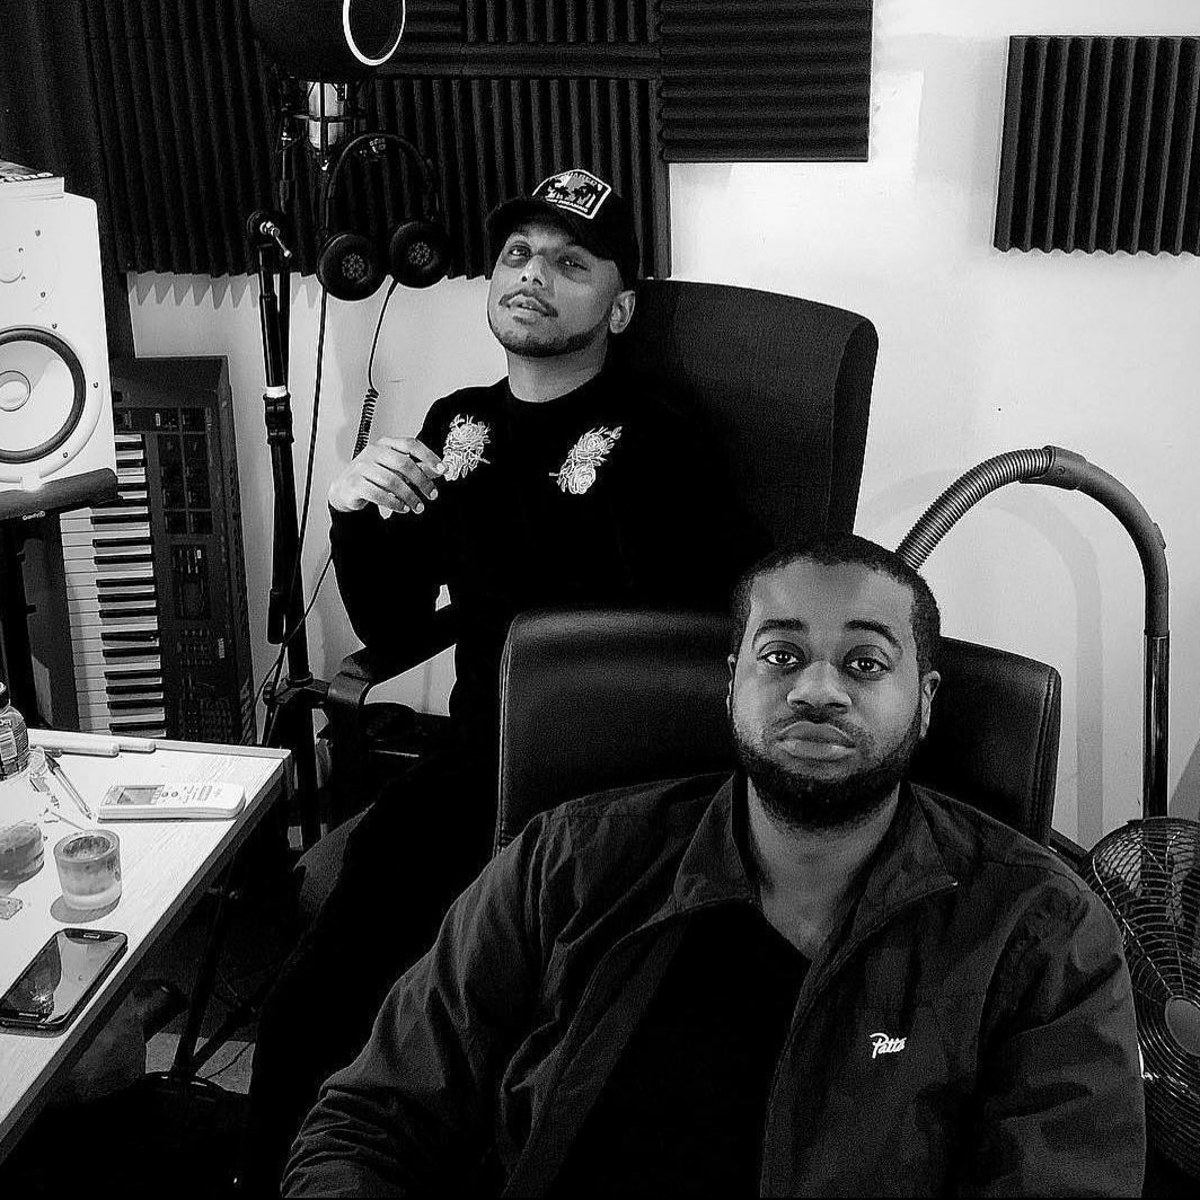 Rude Kid Joins Grime Forces With Sir Spyro For 'Rude Sounds' EP